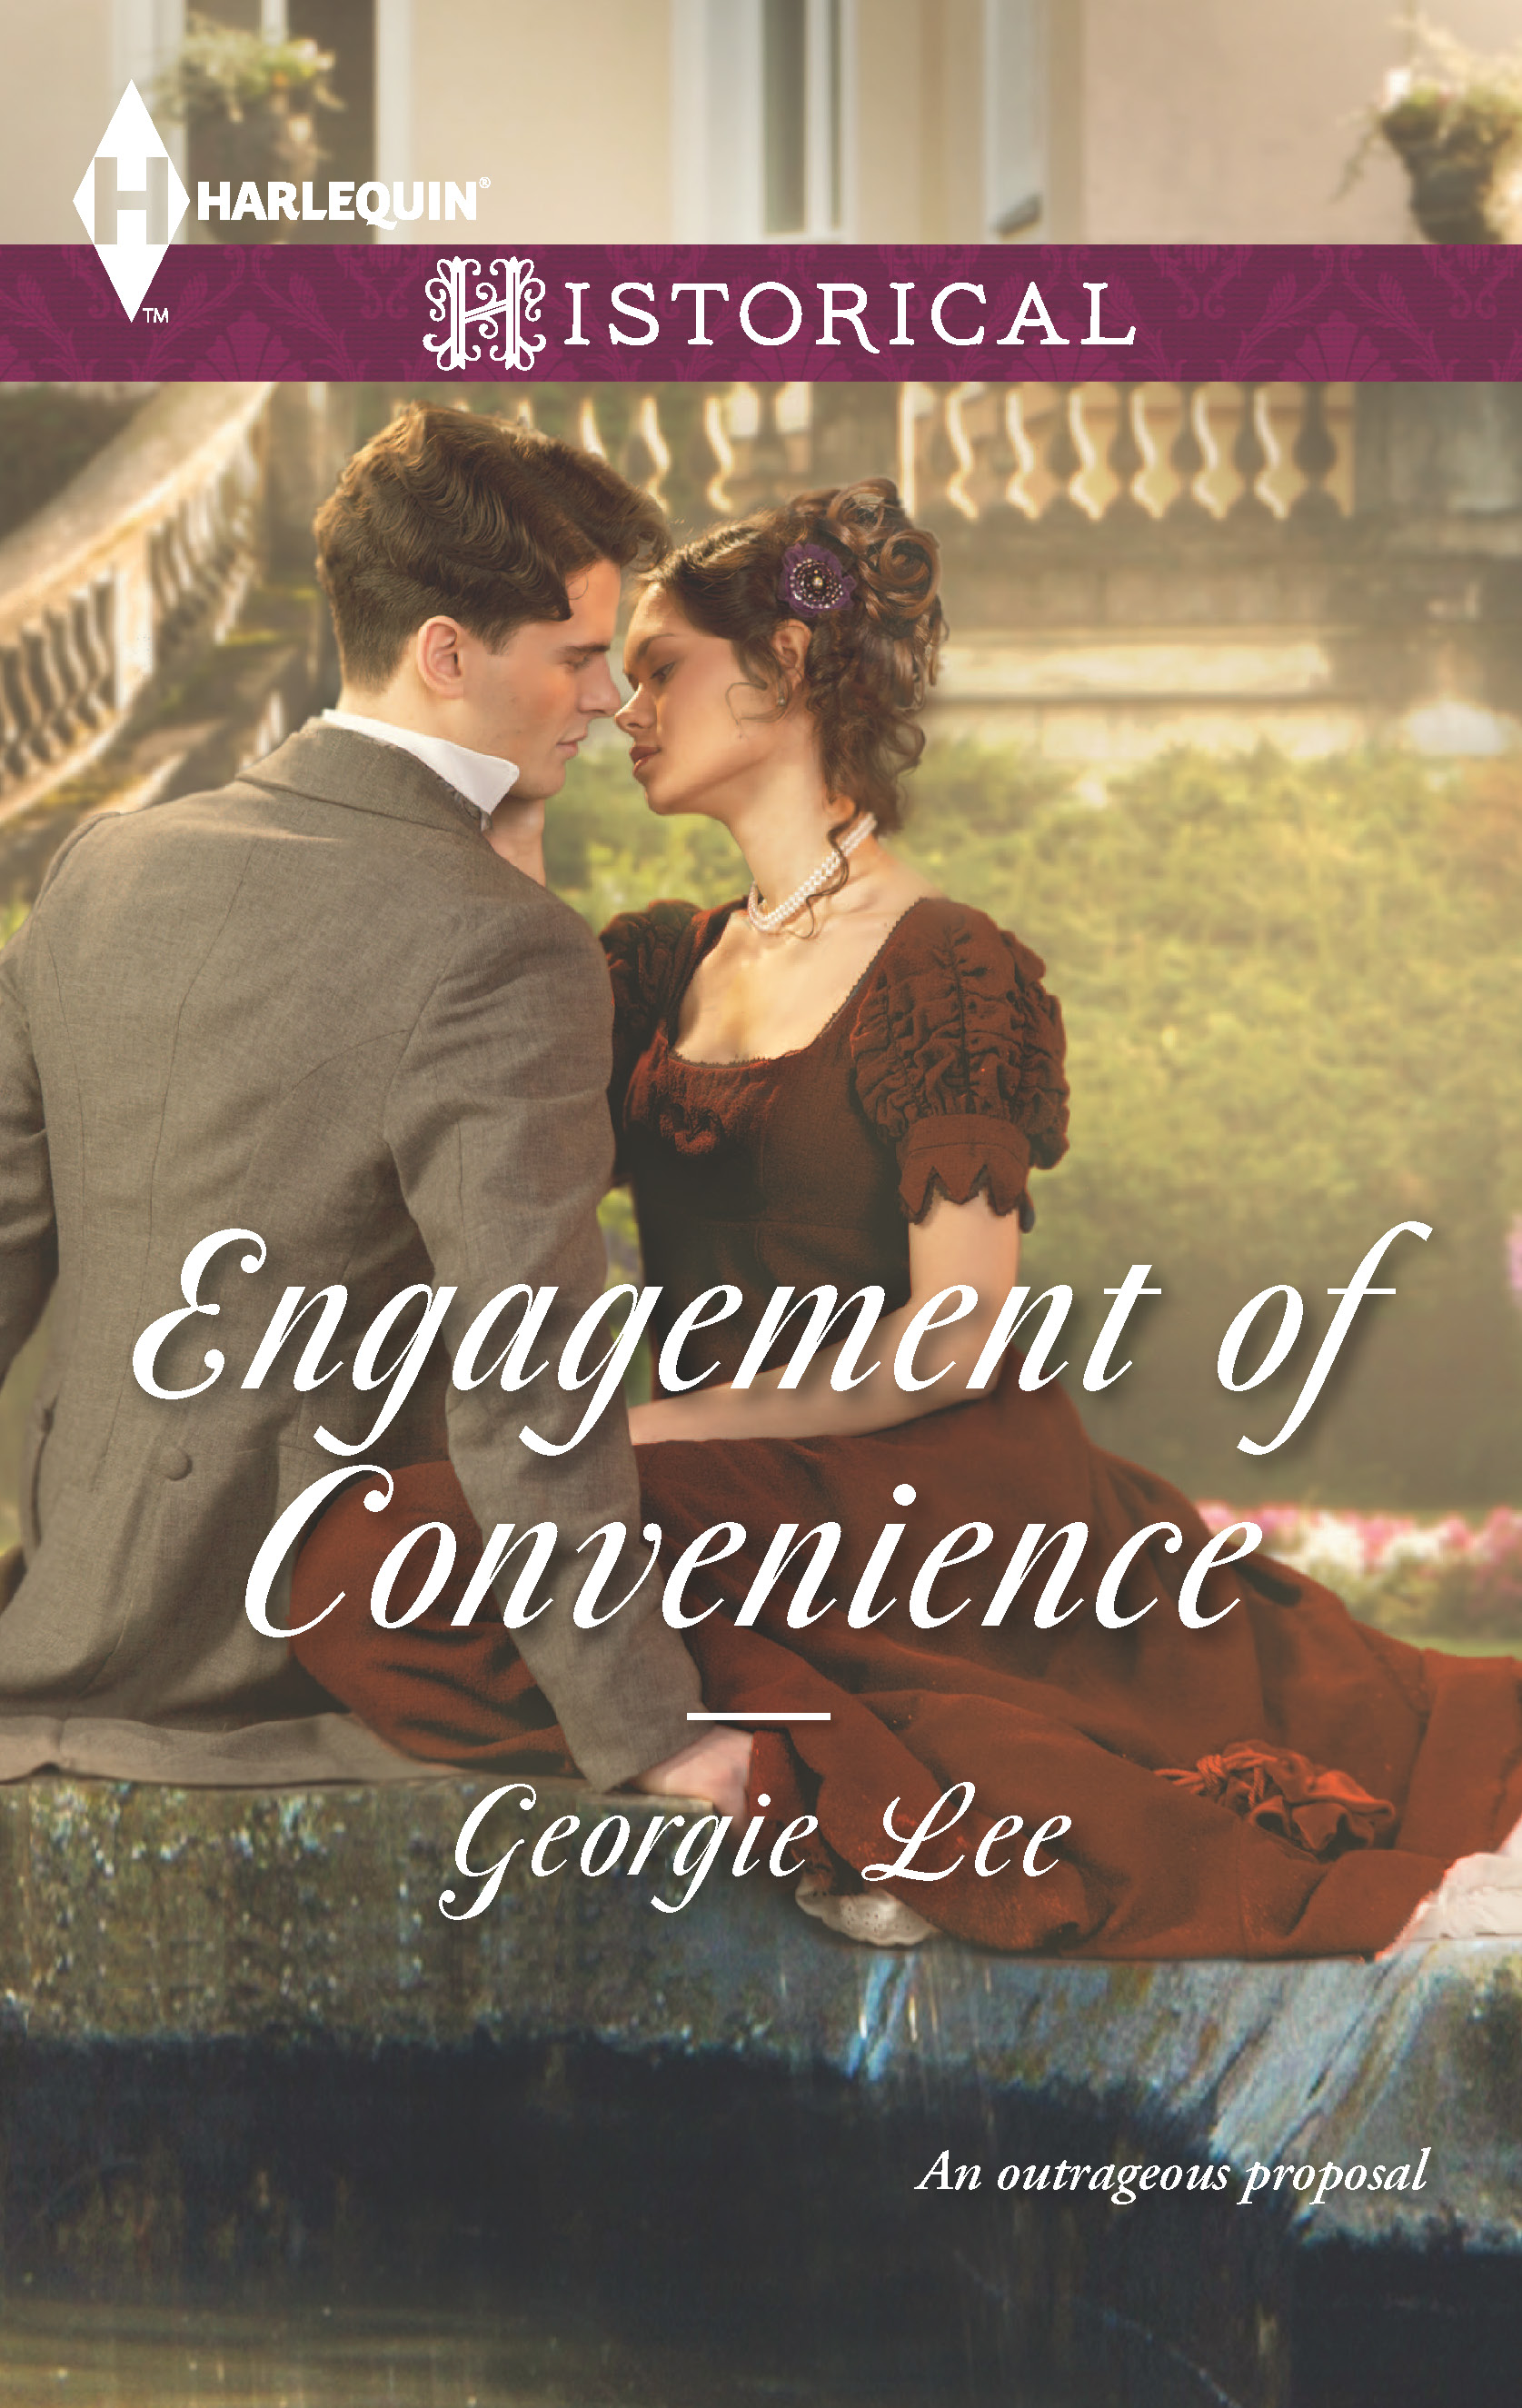 Engagement of Convenience, Georgie Lee, Harlequin, Historical Romance